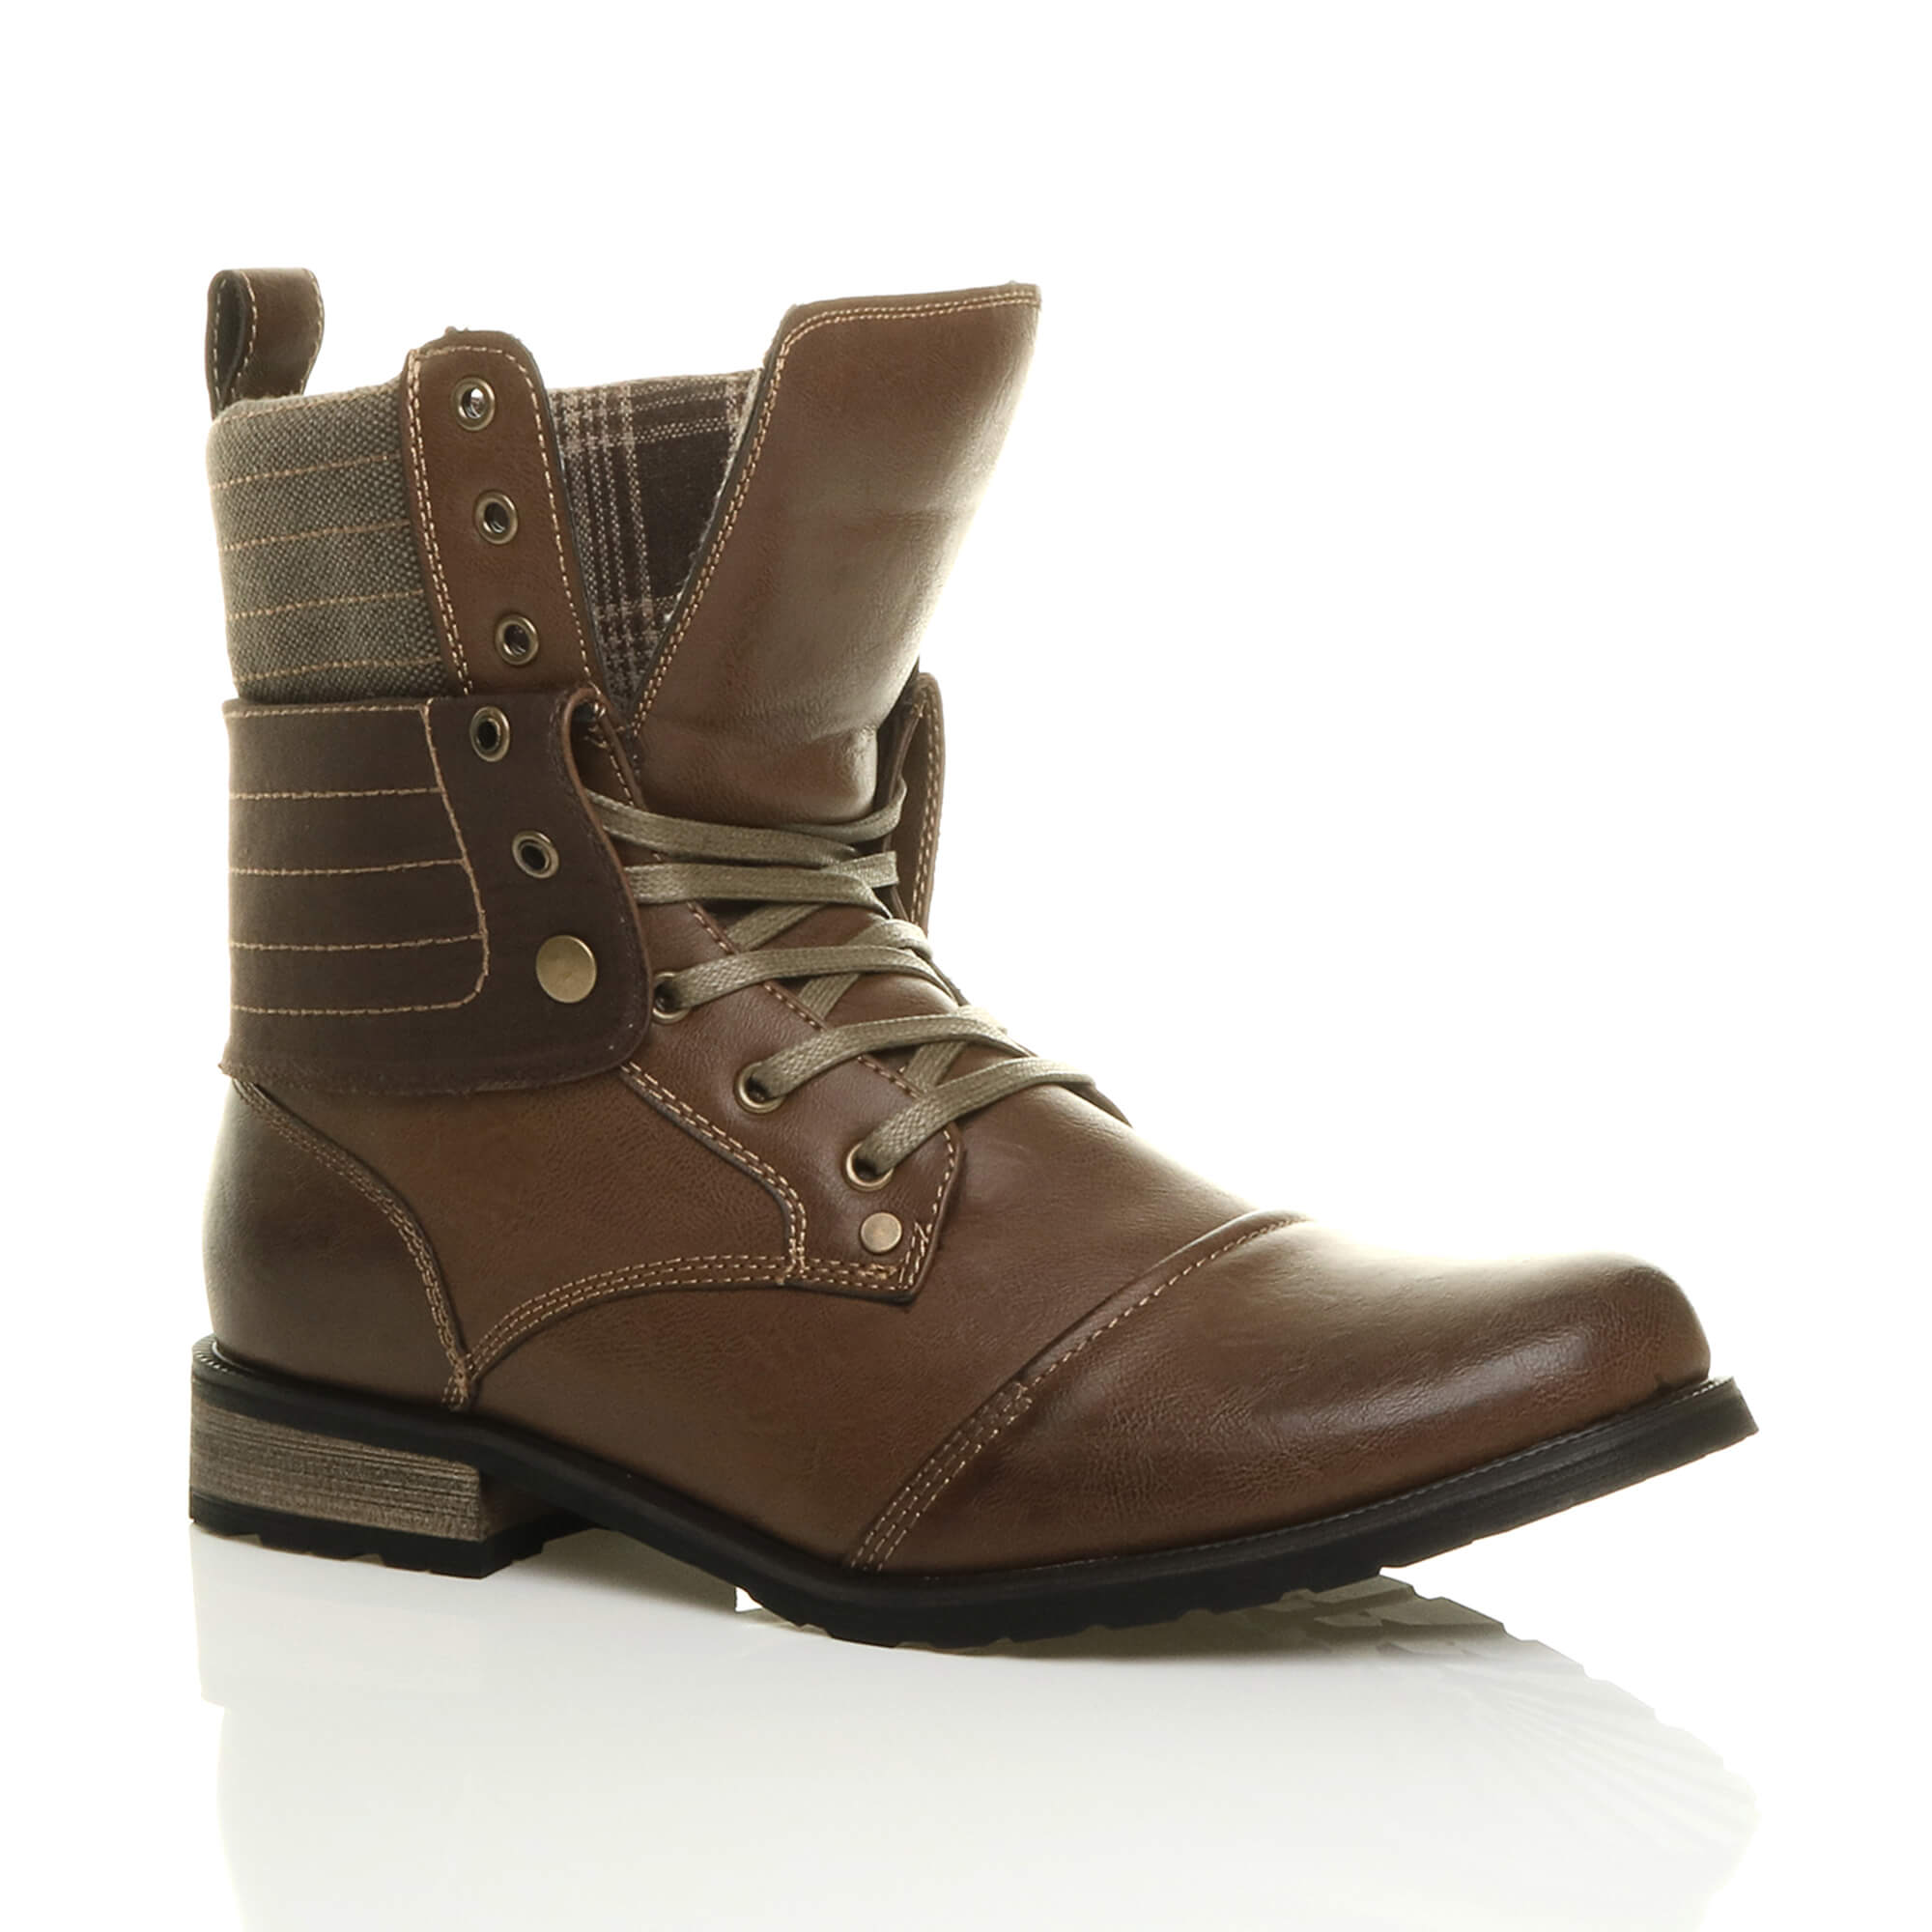 Mens-lace-up-low-heel-flat-fold-over-padded-cuff-military-ankle-boots-size miniatuur 14